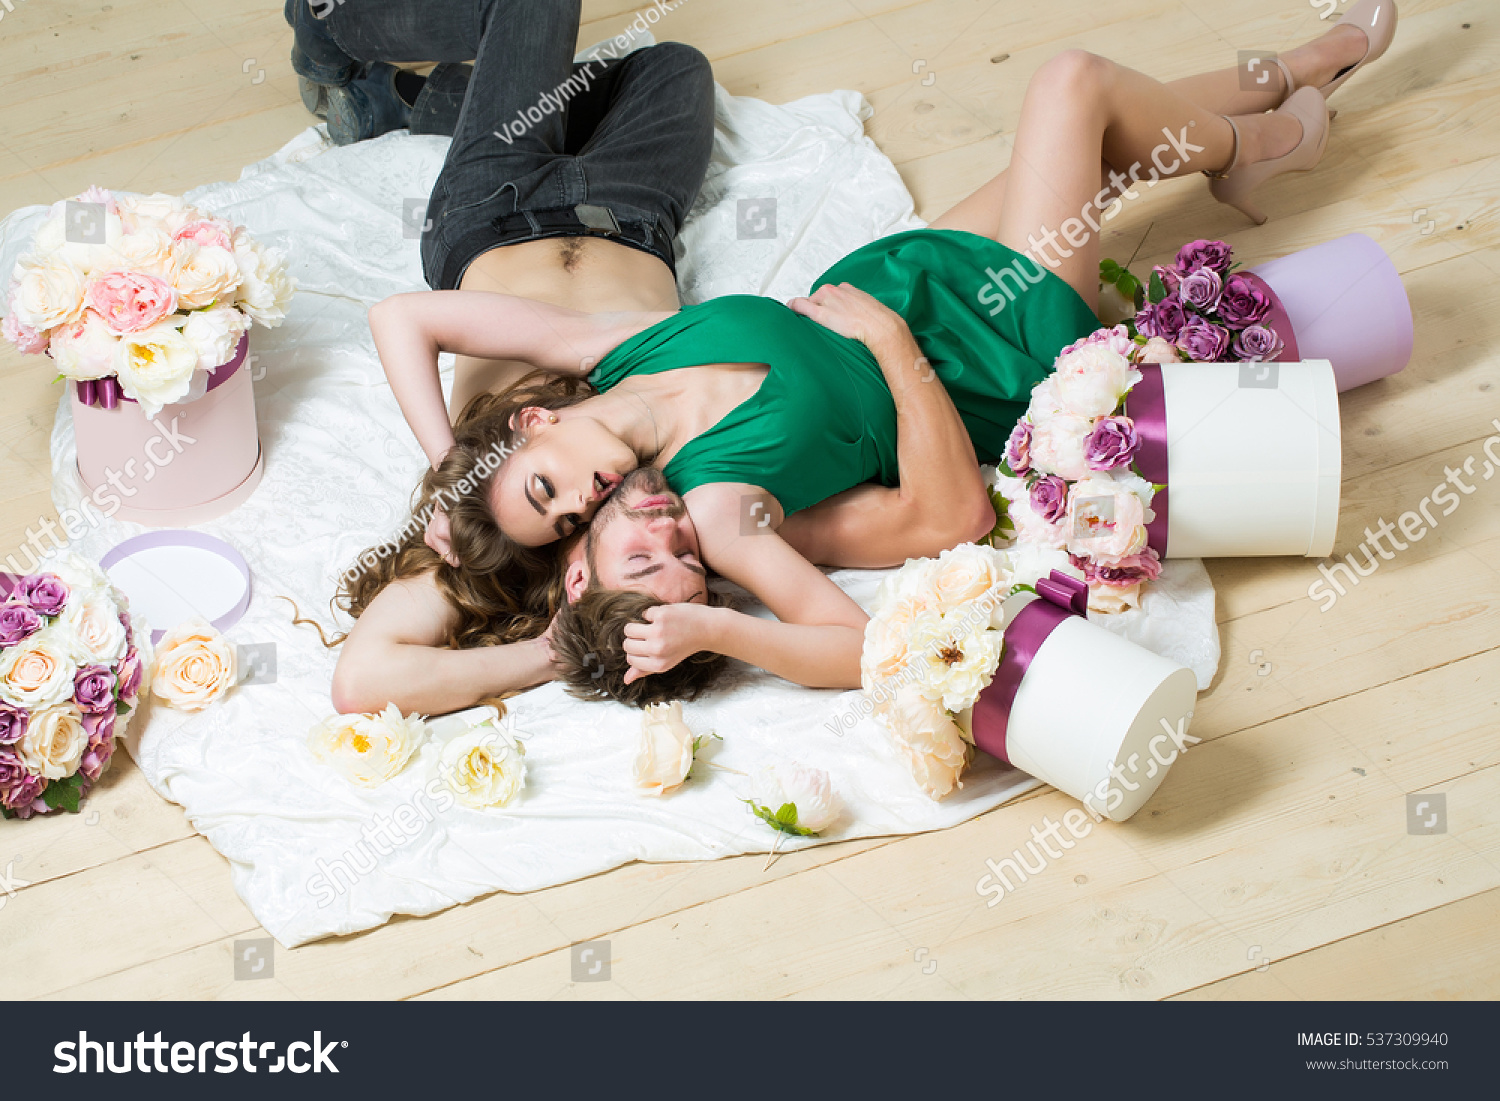 Sexy Couple Young Beautiful Cute Lovers Stock Photo -8126